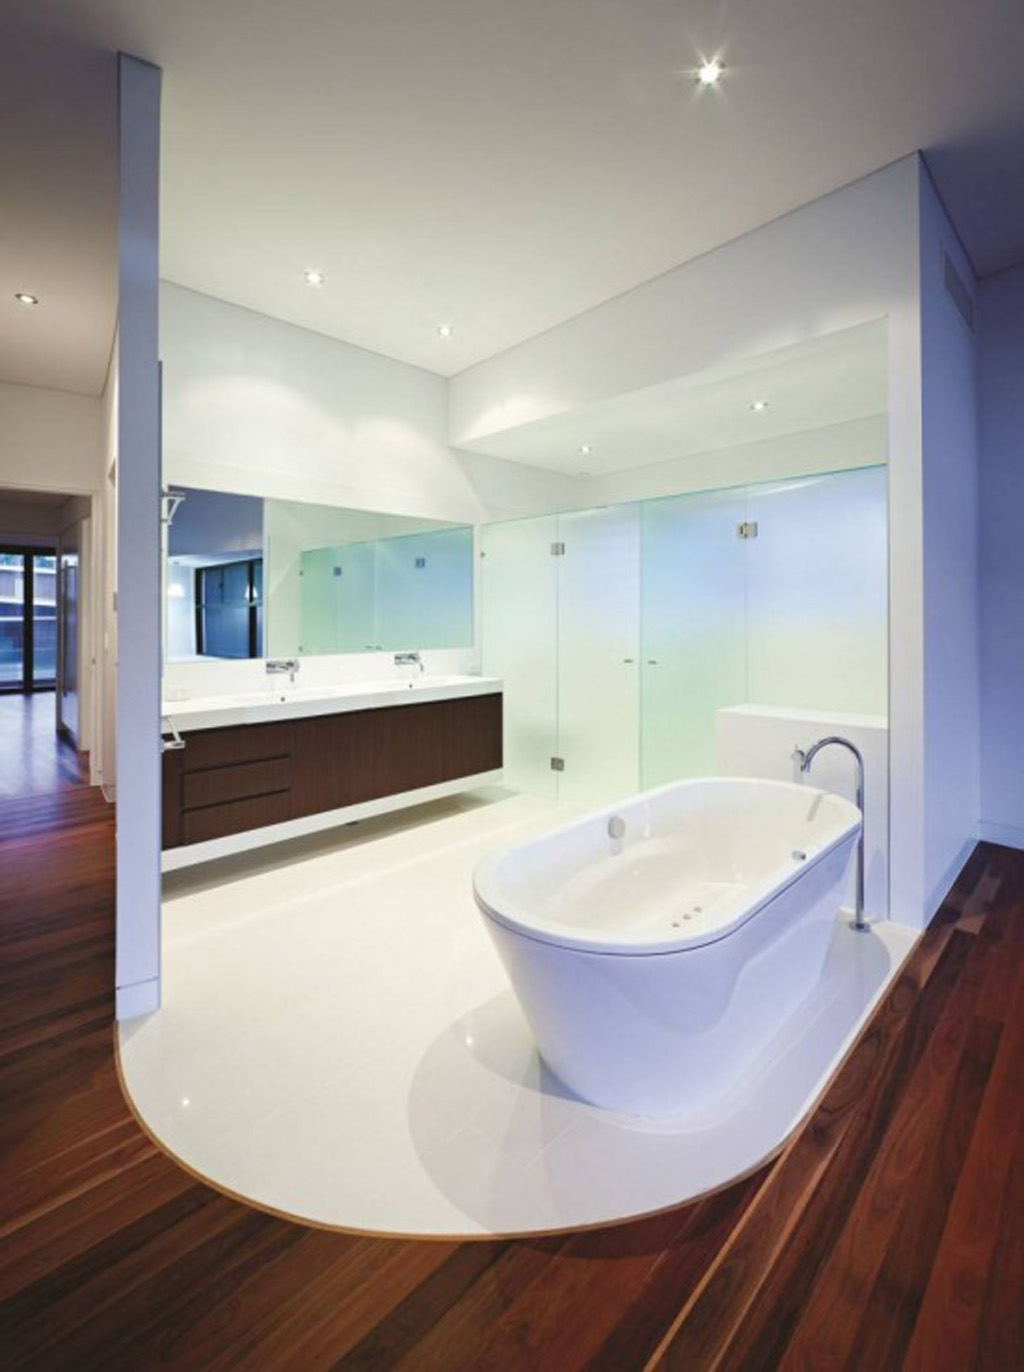 Contemporary bathroom designs - Bathroom designs images ...